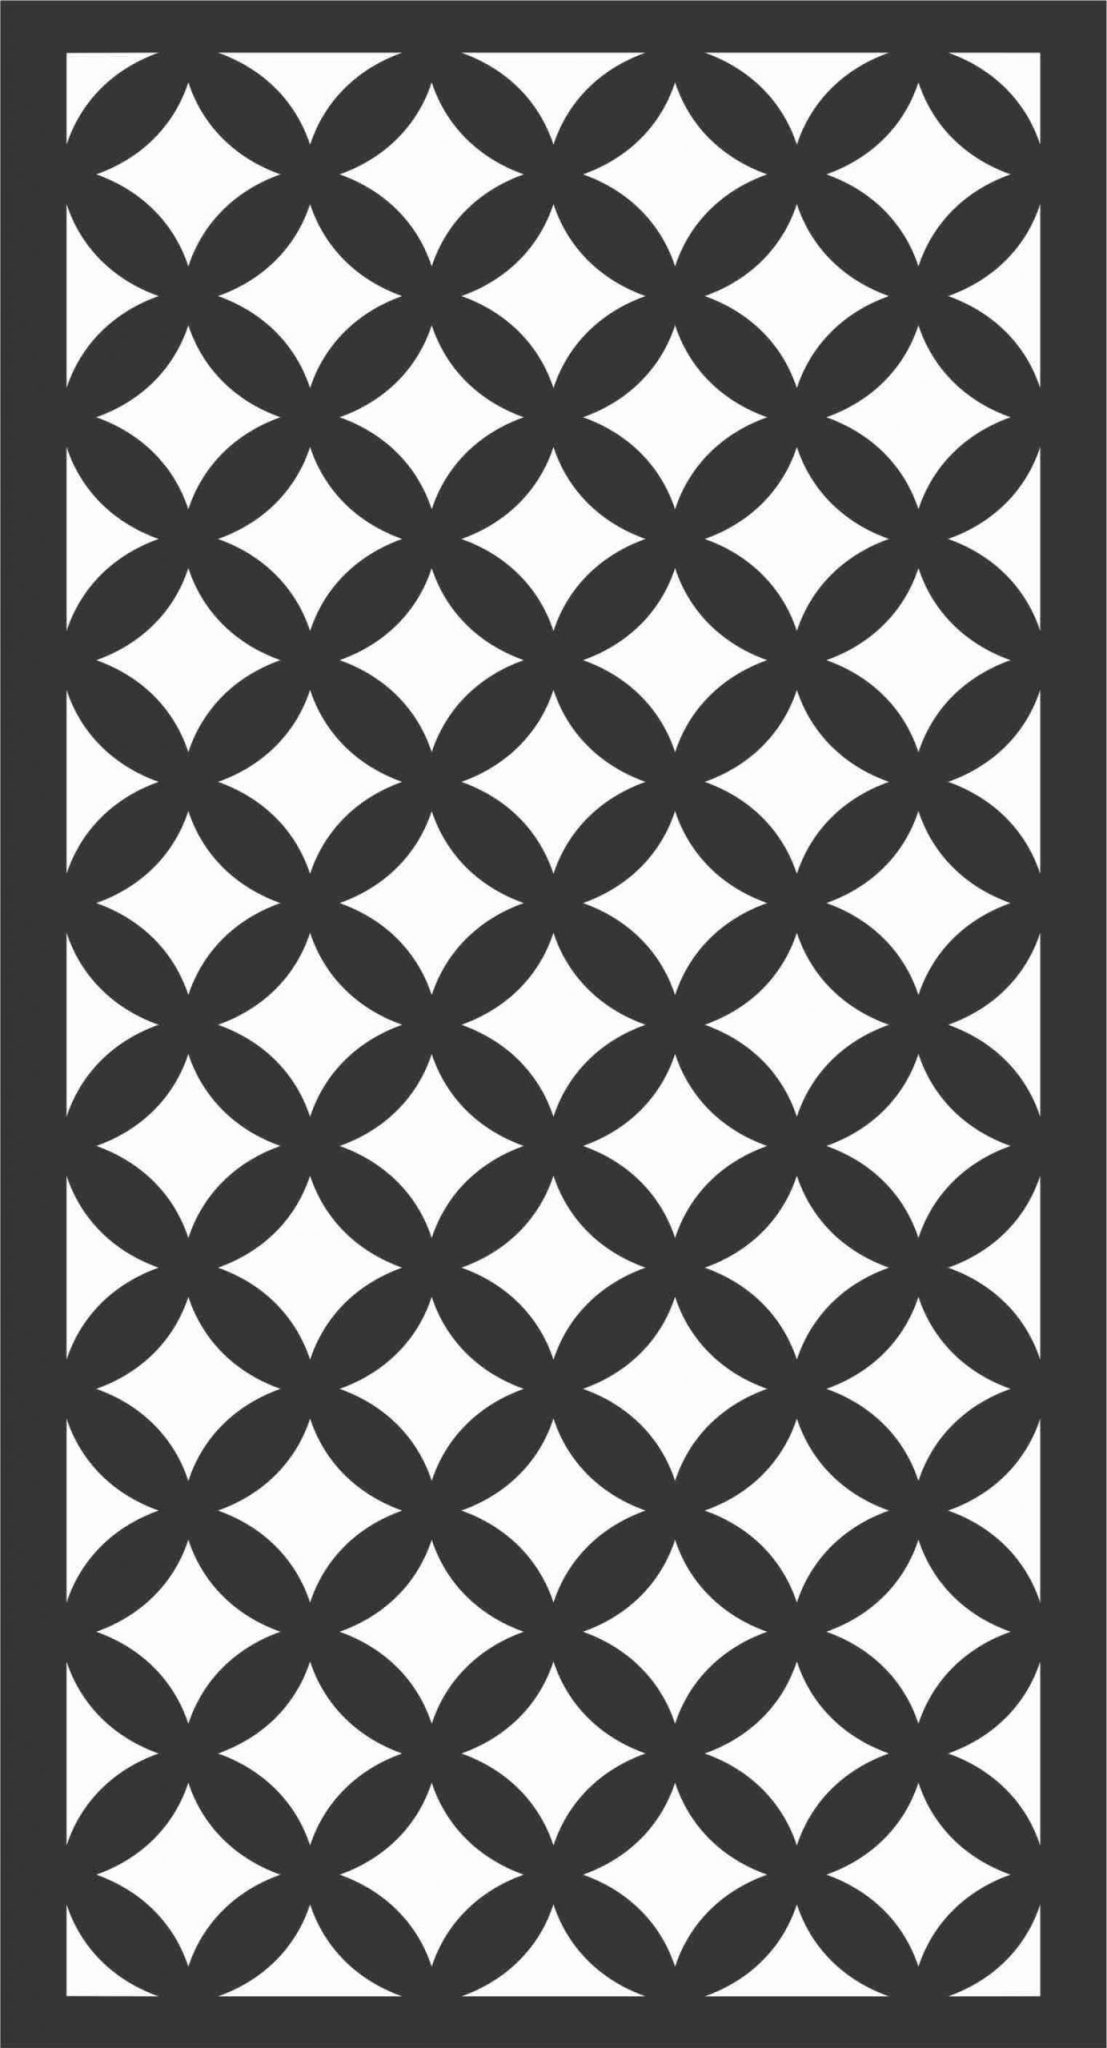 Floral Screen Patterns Design 14 Free DXF File